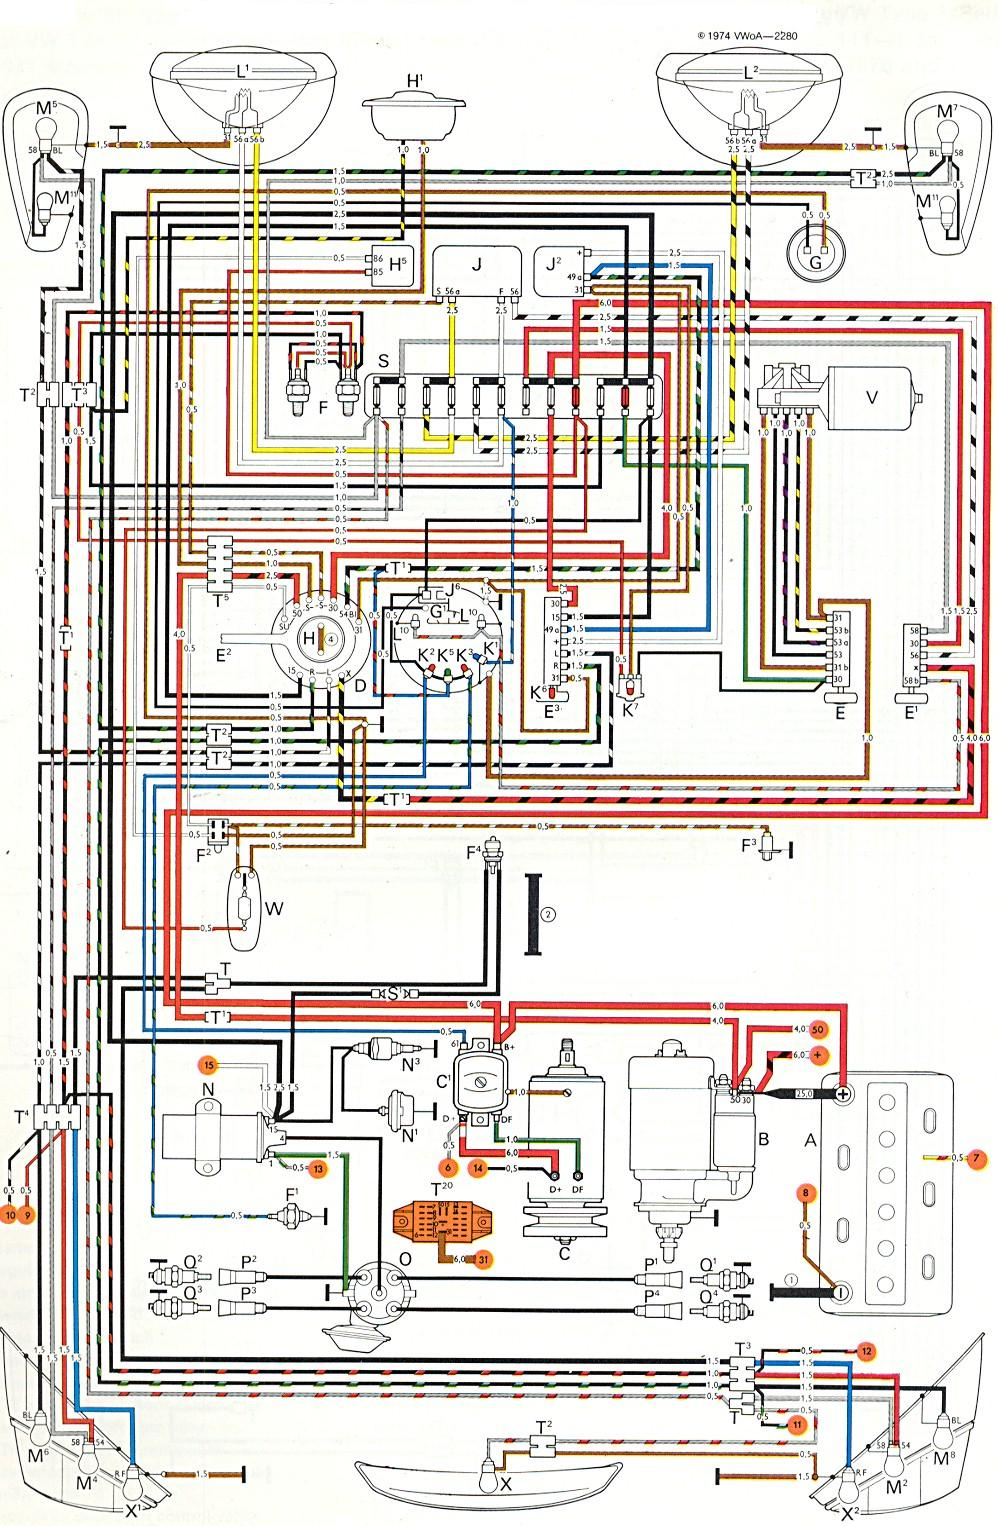 1972 vw bug wiring wiring diagram Wiring Diagram for 1979 VW Super Beetle 2006 volkswagen beetle wiring diagram 1 wiring diagram source2006 volkswagen beetle wiring diagram 11 13 tridonicsignage